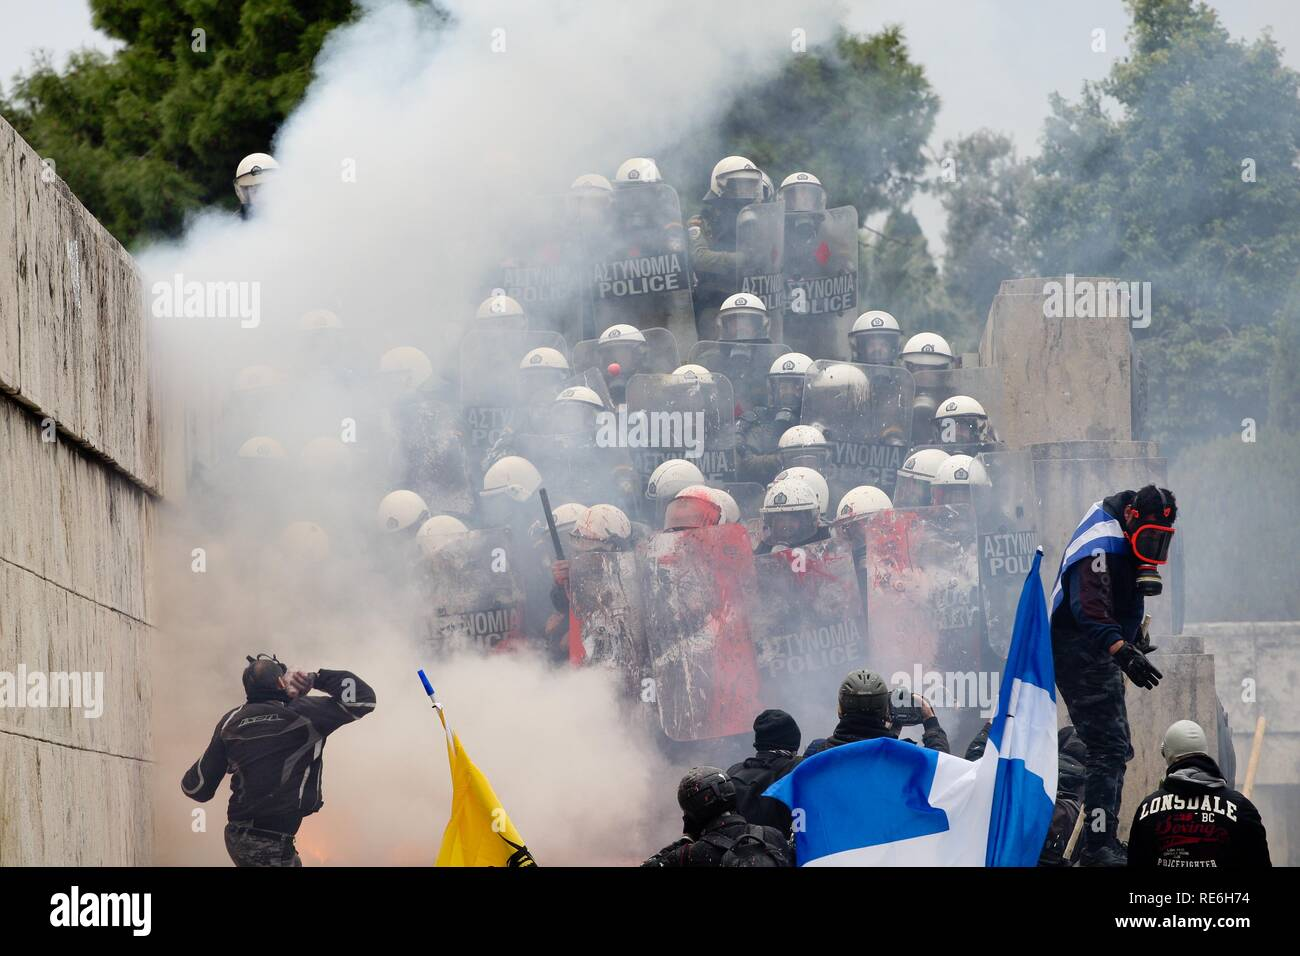 Athens, Greece. 20th Jan, 2019. Demonstrators clash with riot police during a rally outside of the Greek parliament. Thousands Greeks protest against Macedonia name deal at Syntagma square in central Athens. (Credit Image: © Aristidis VafeiadakisZUMA Wire) Credit: ZUMA Press, Inc./Alamy Live News - Stock Image